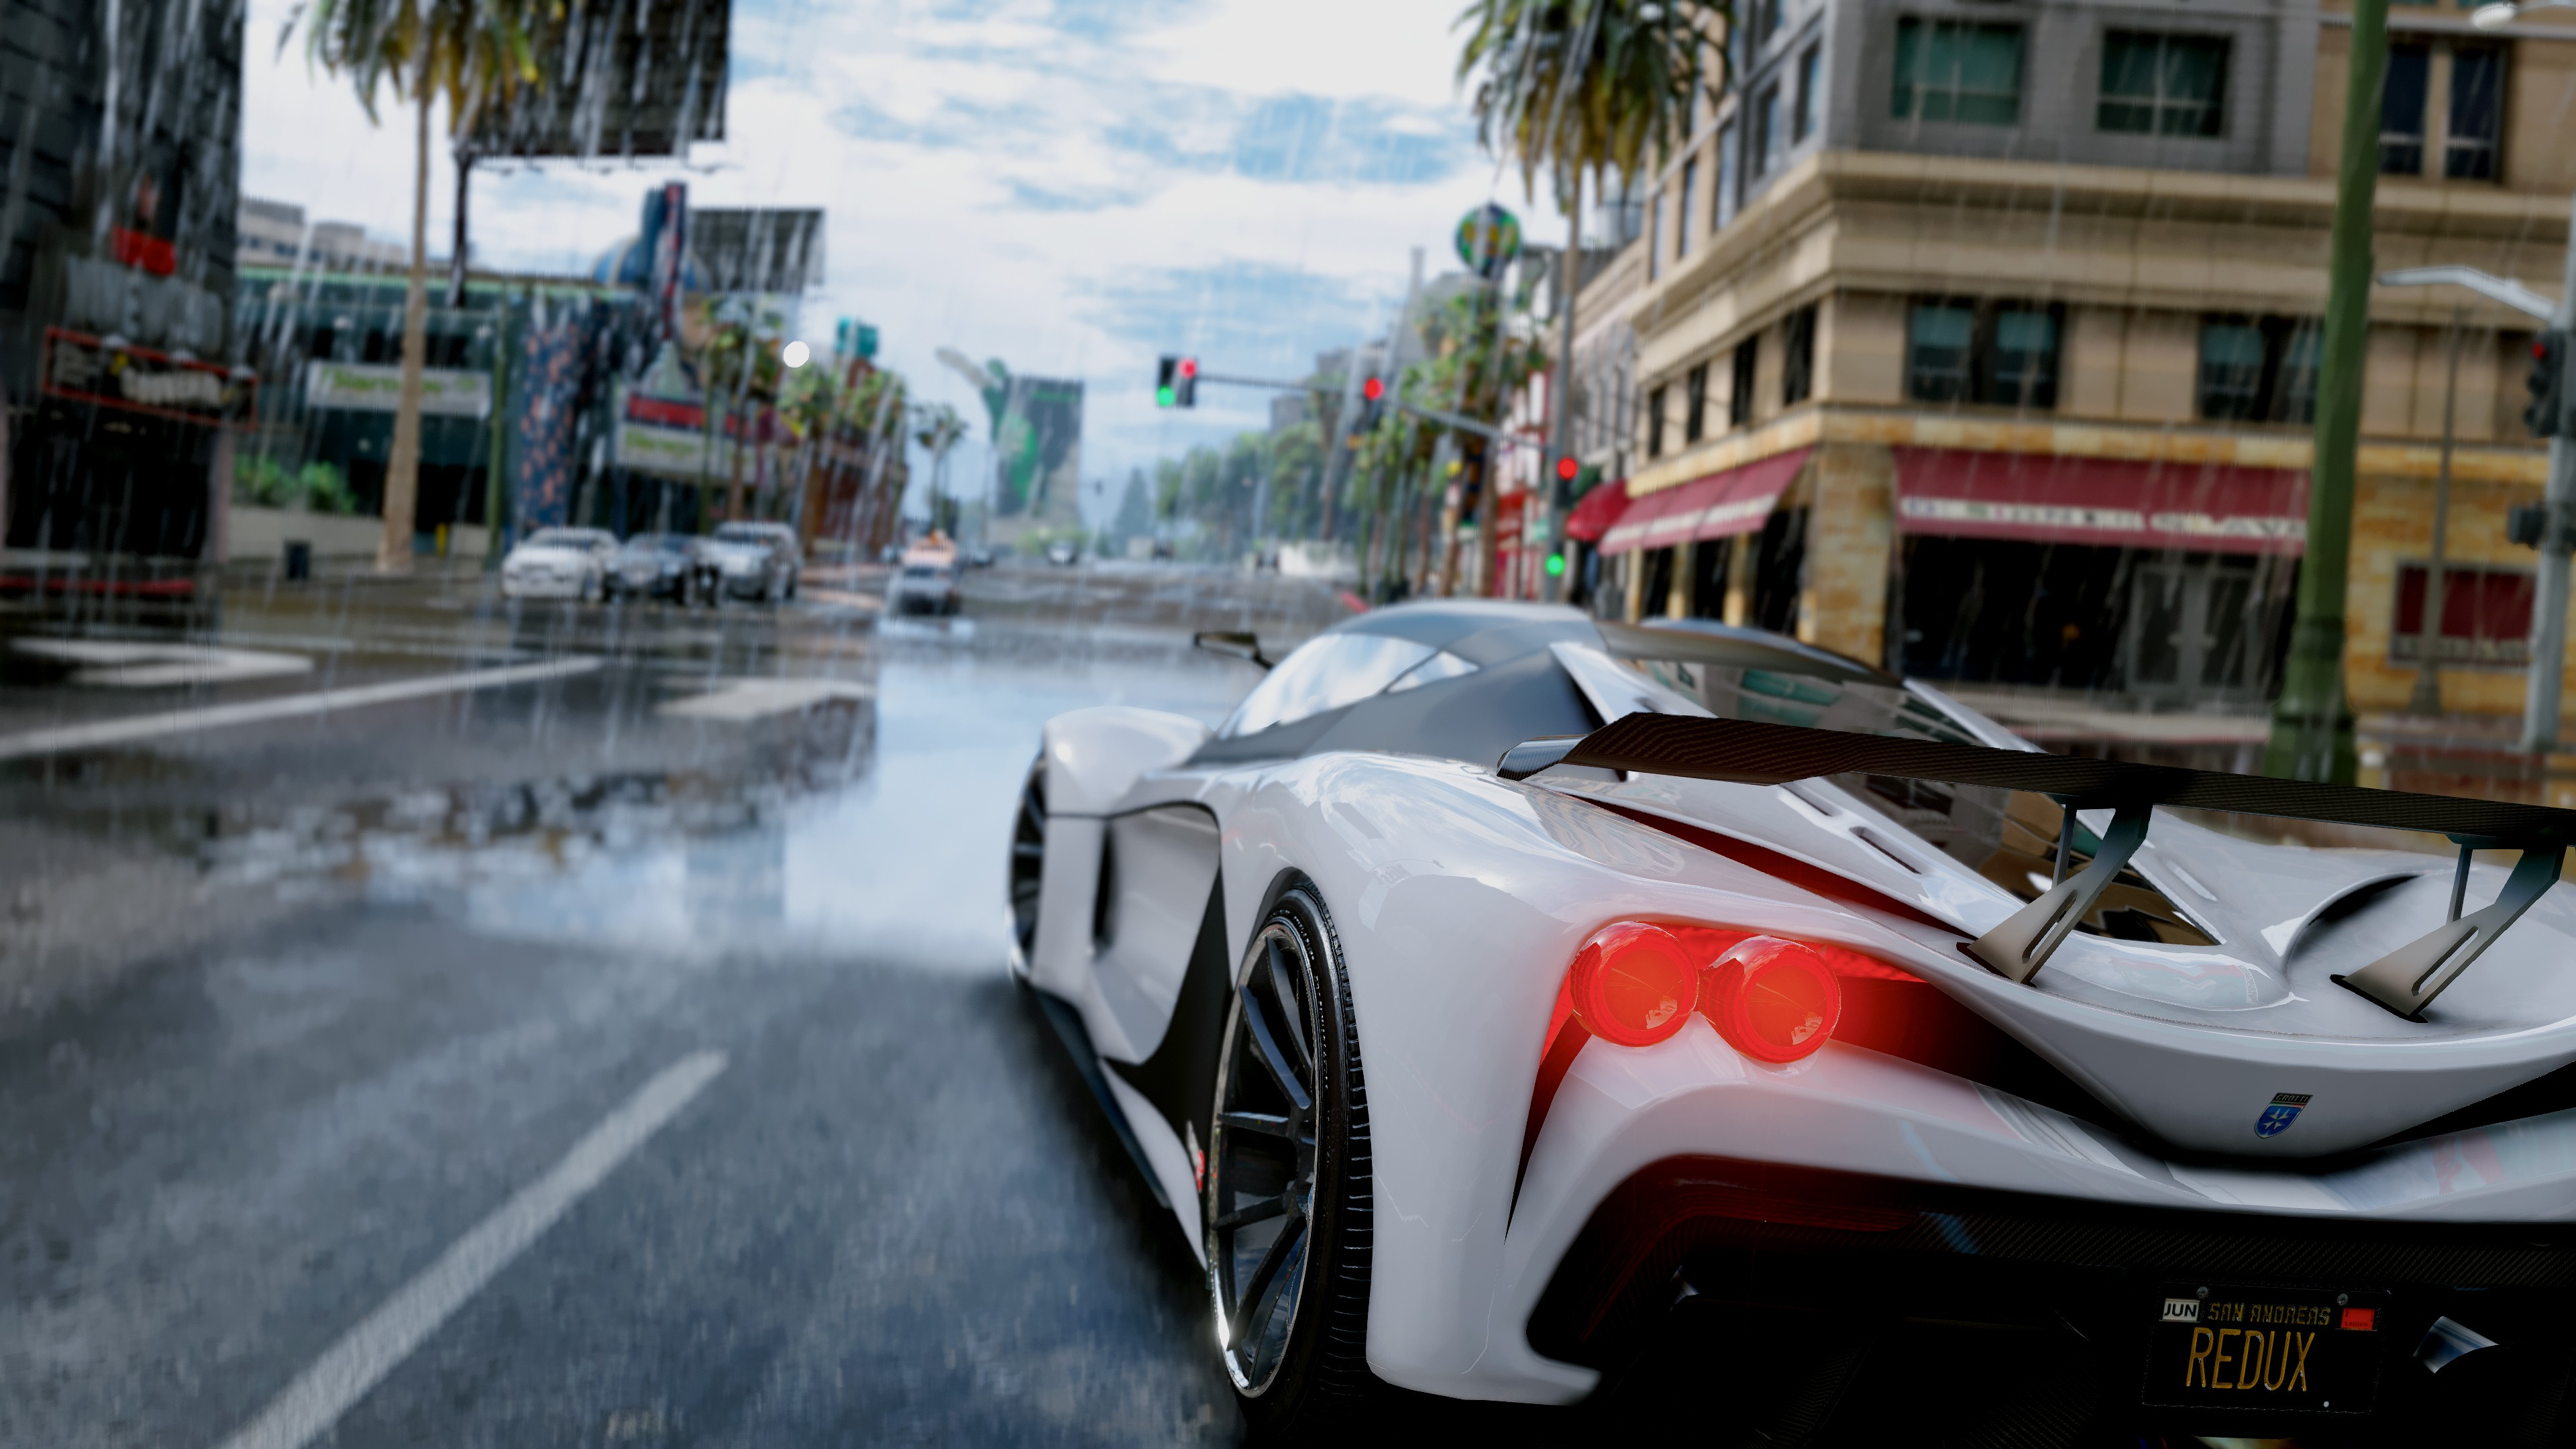 gta 5 online turismo rg, hd games, 4k wallpapers, images